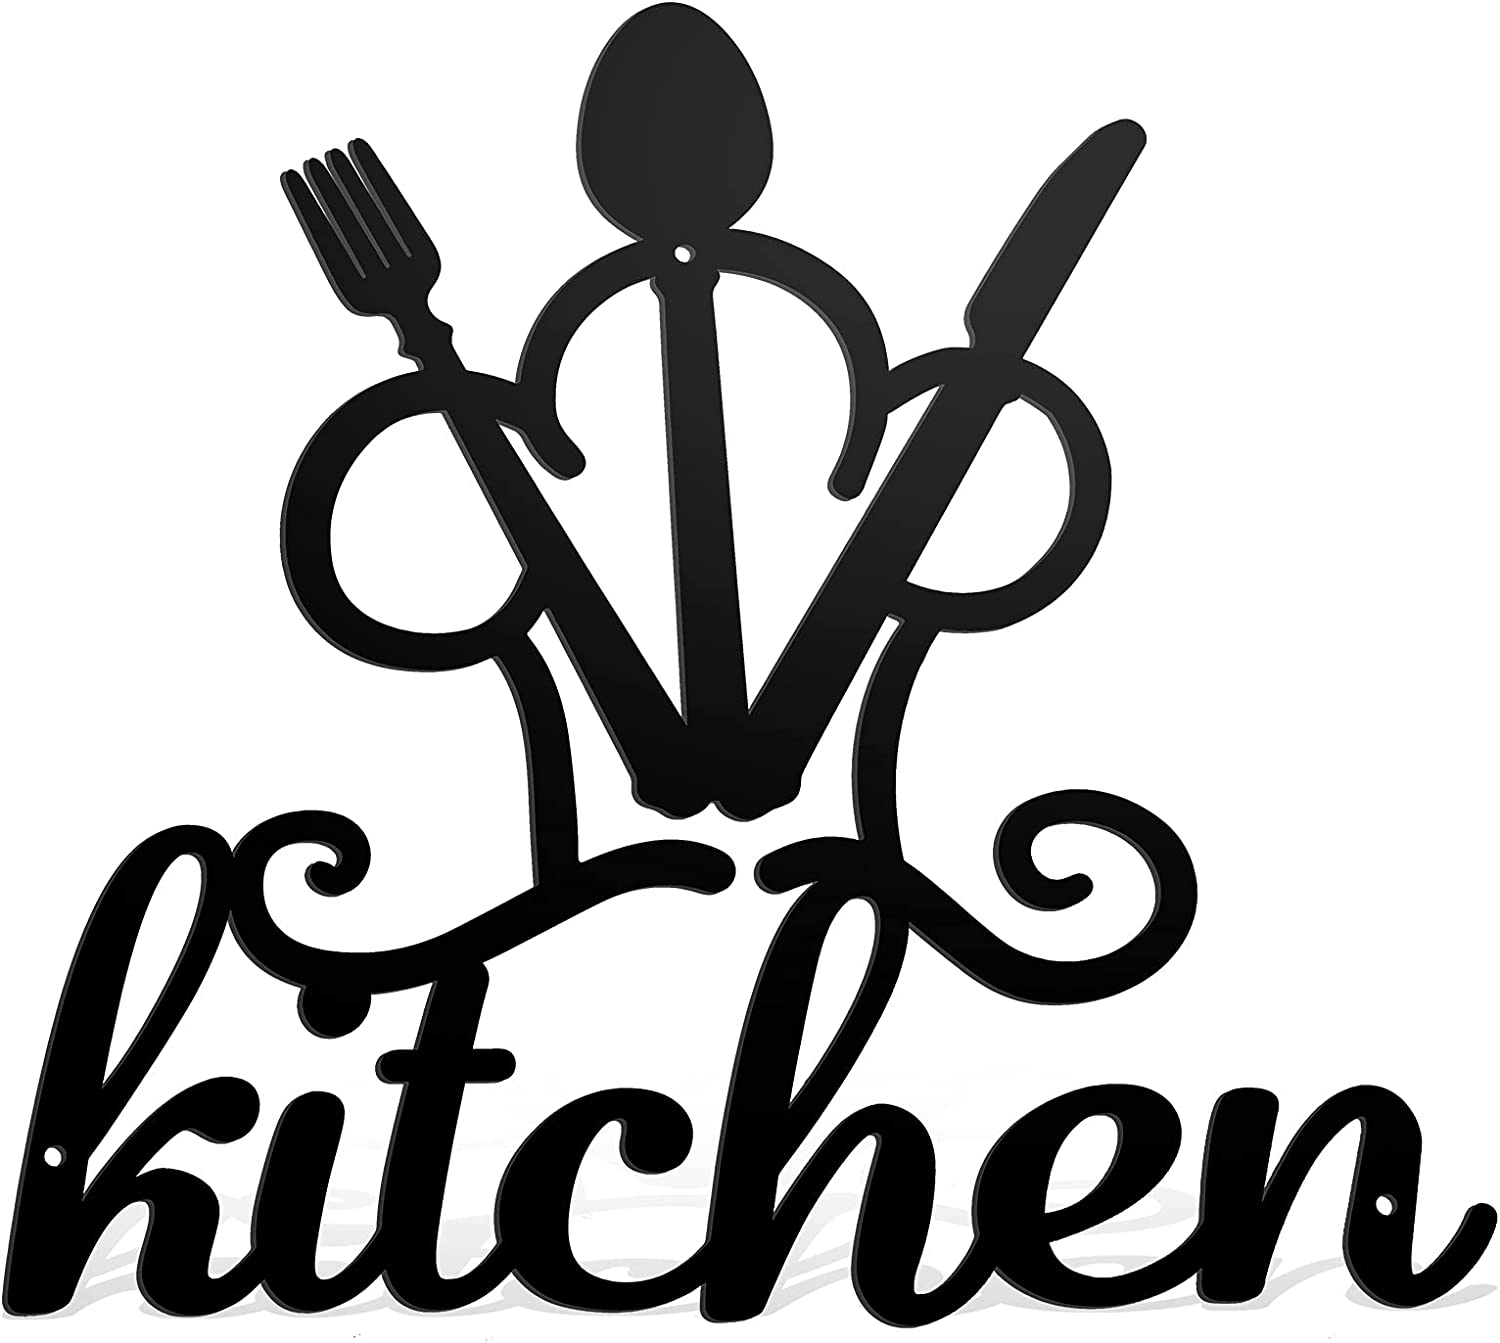 Kitchen Black Metal Wall Word Sign Rustic Cutout Kitchen Wall Decor Metal Wall Hanging Word Decor Kitchen Sign Fork Spoon Knife Wall Sign for Home Kitchen Living Room 15.7 x 15.9 Inches